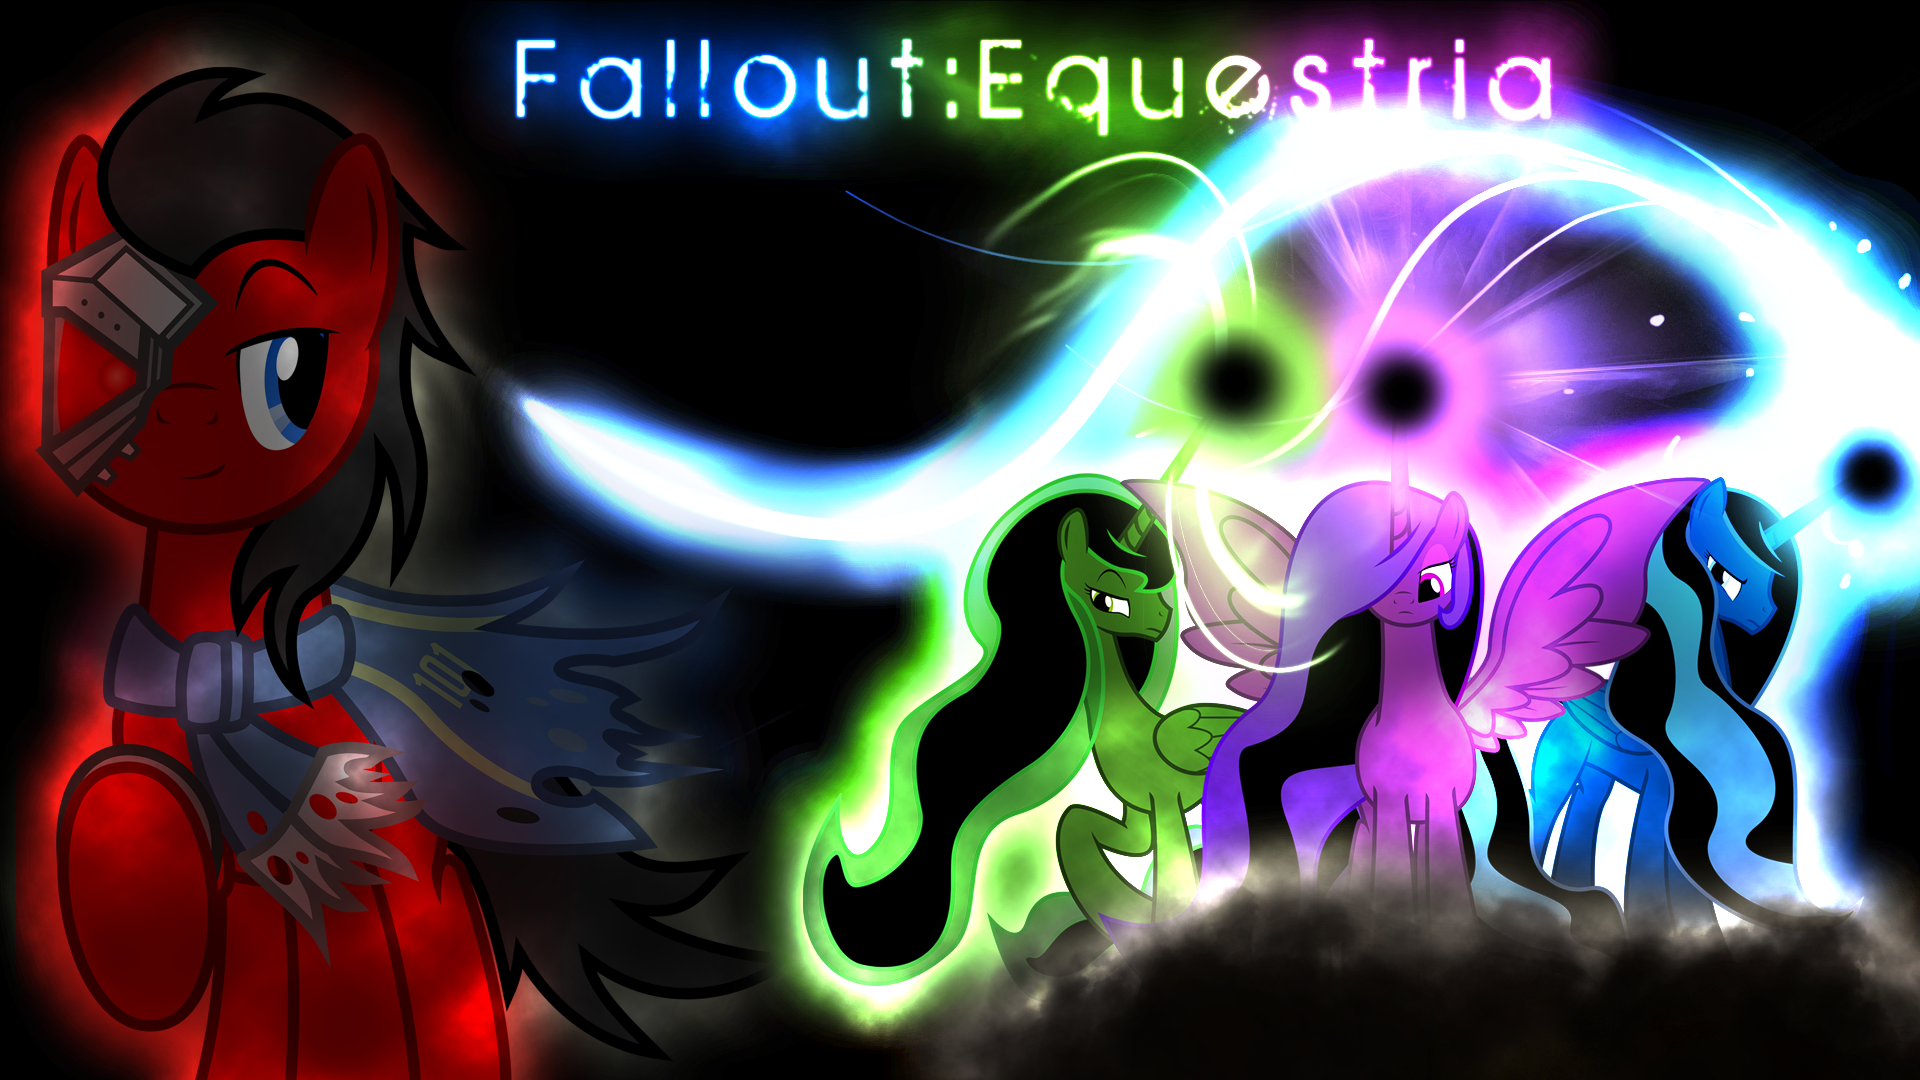 Fallout: Equestria Wallpaper by Arakareeis